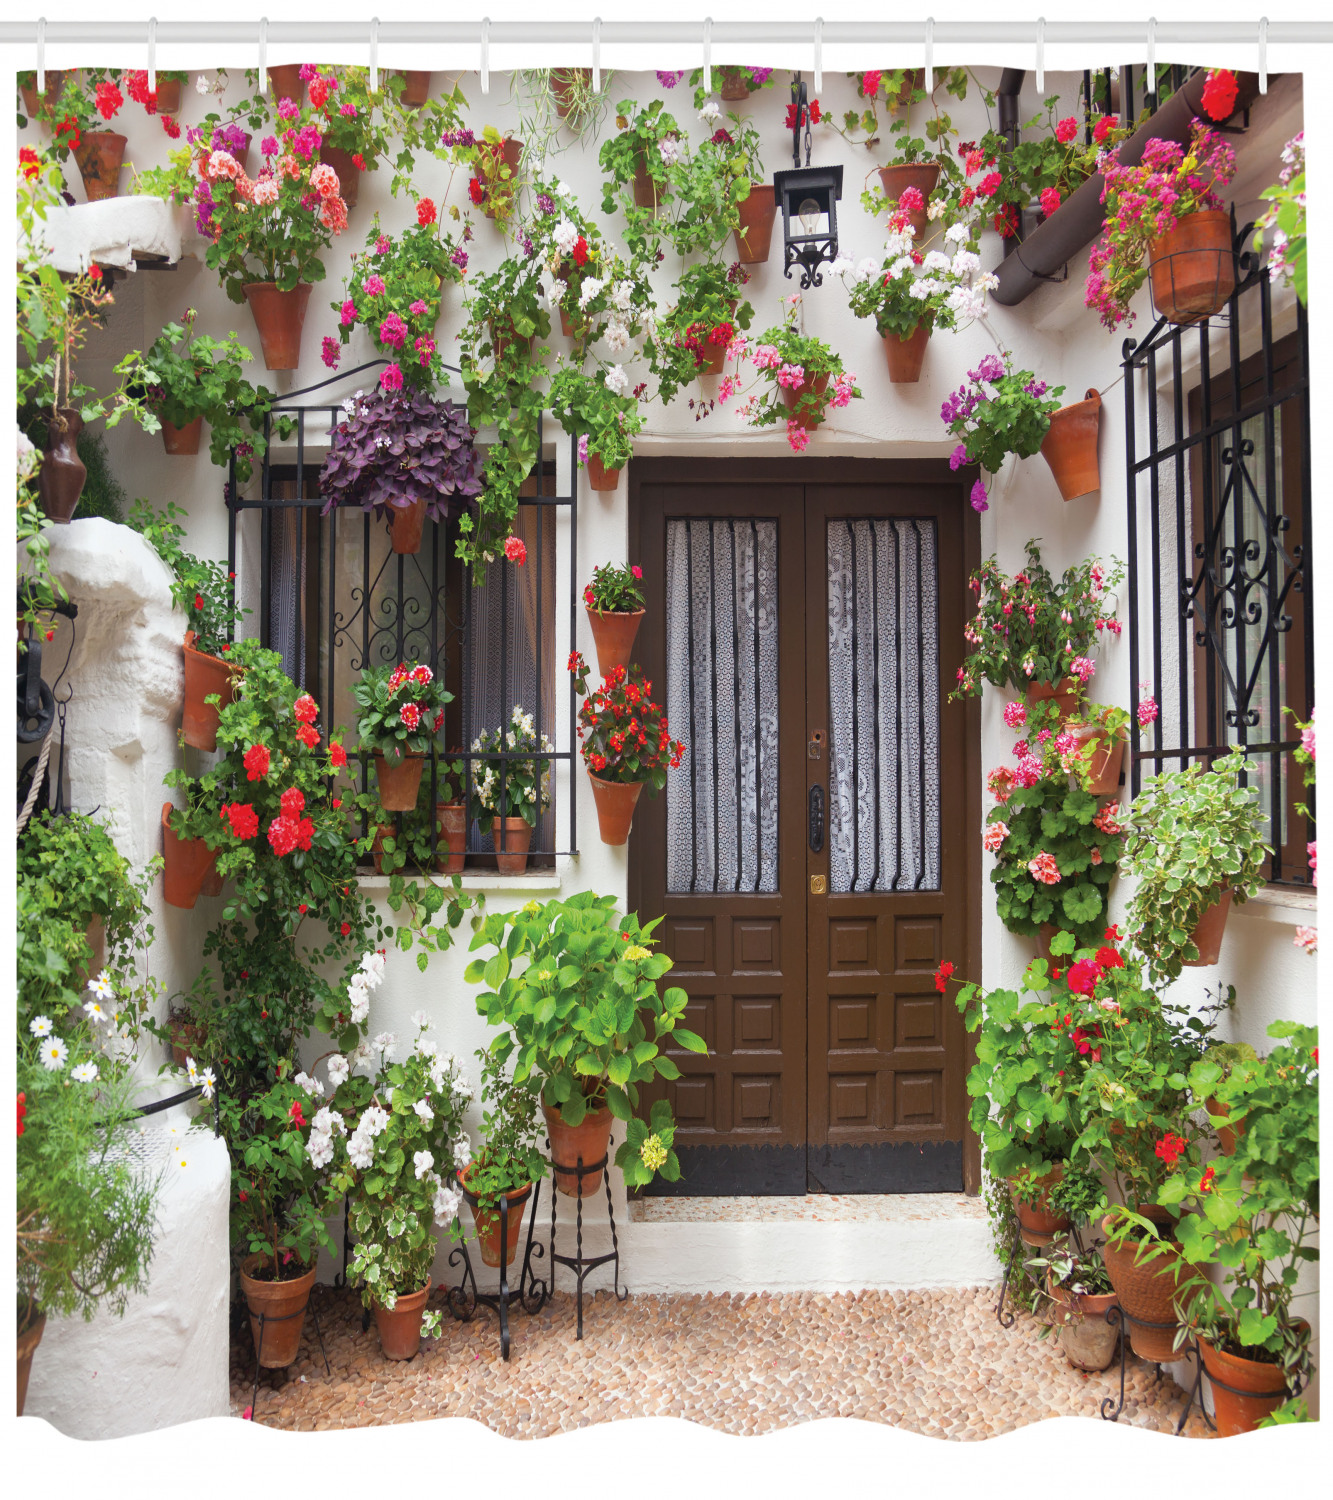 Image is loading Spanish-House-Flower-Pots-Old-Mediterranean-Shower-Curtain- & Spanish House Flower Pots Old Mediterranean Shower Curtain Extra ...